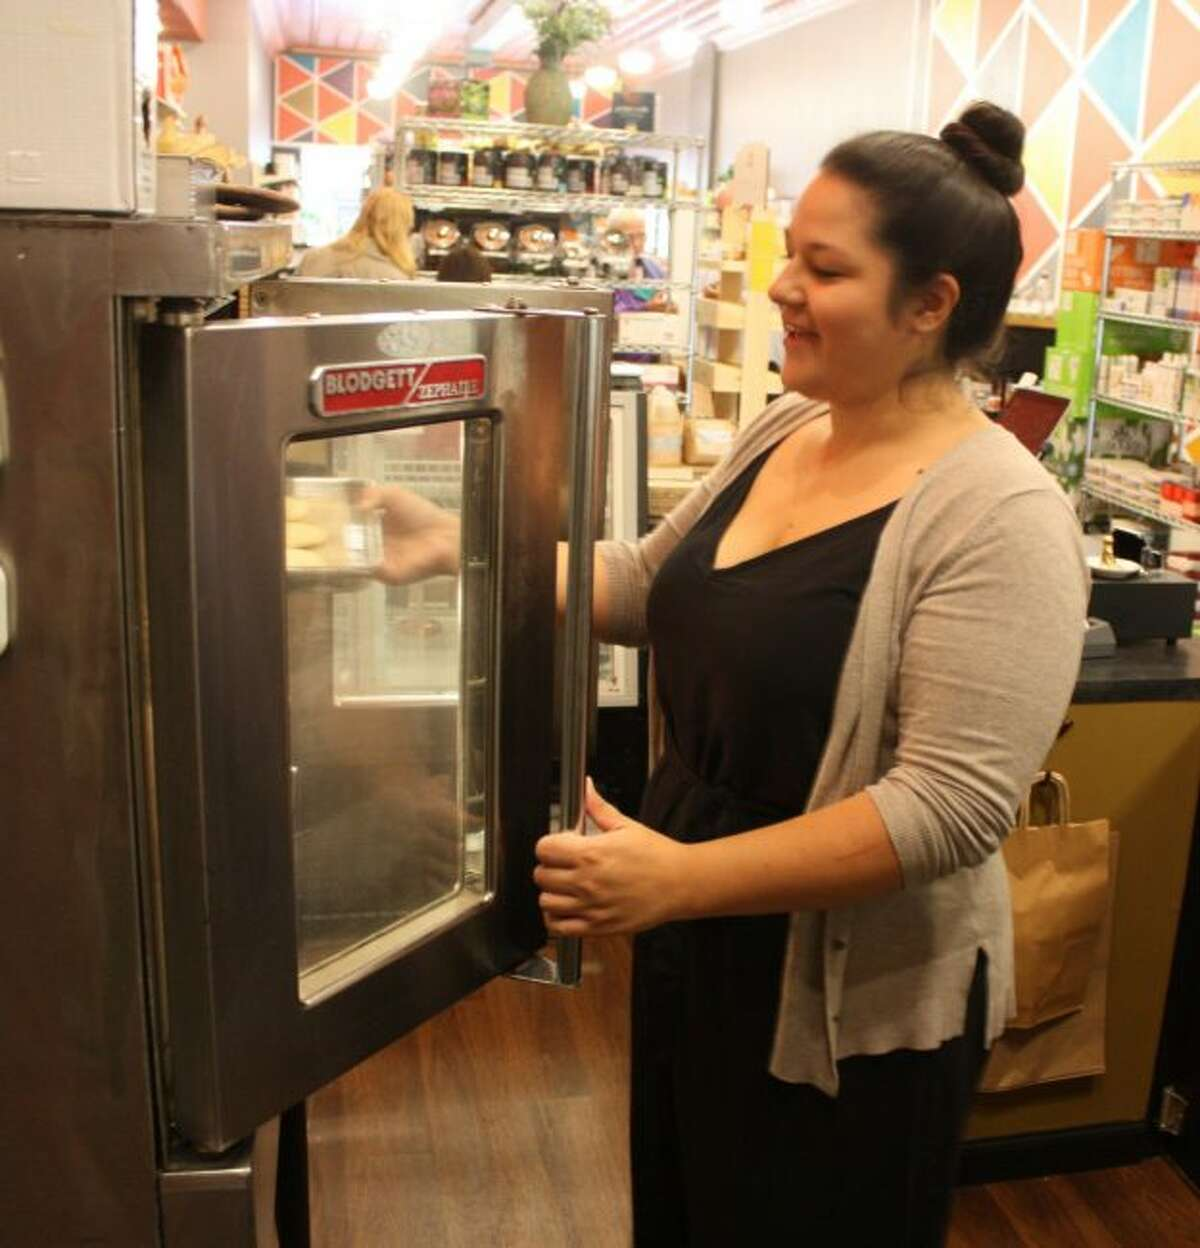 Nicole Martinez, who opened the Coco Renee bakery in Big Rapids earlier this month, is pictured Thursday. (Pioneer photo/Tim Rath)